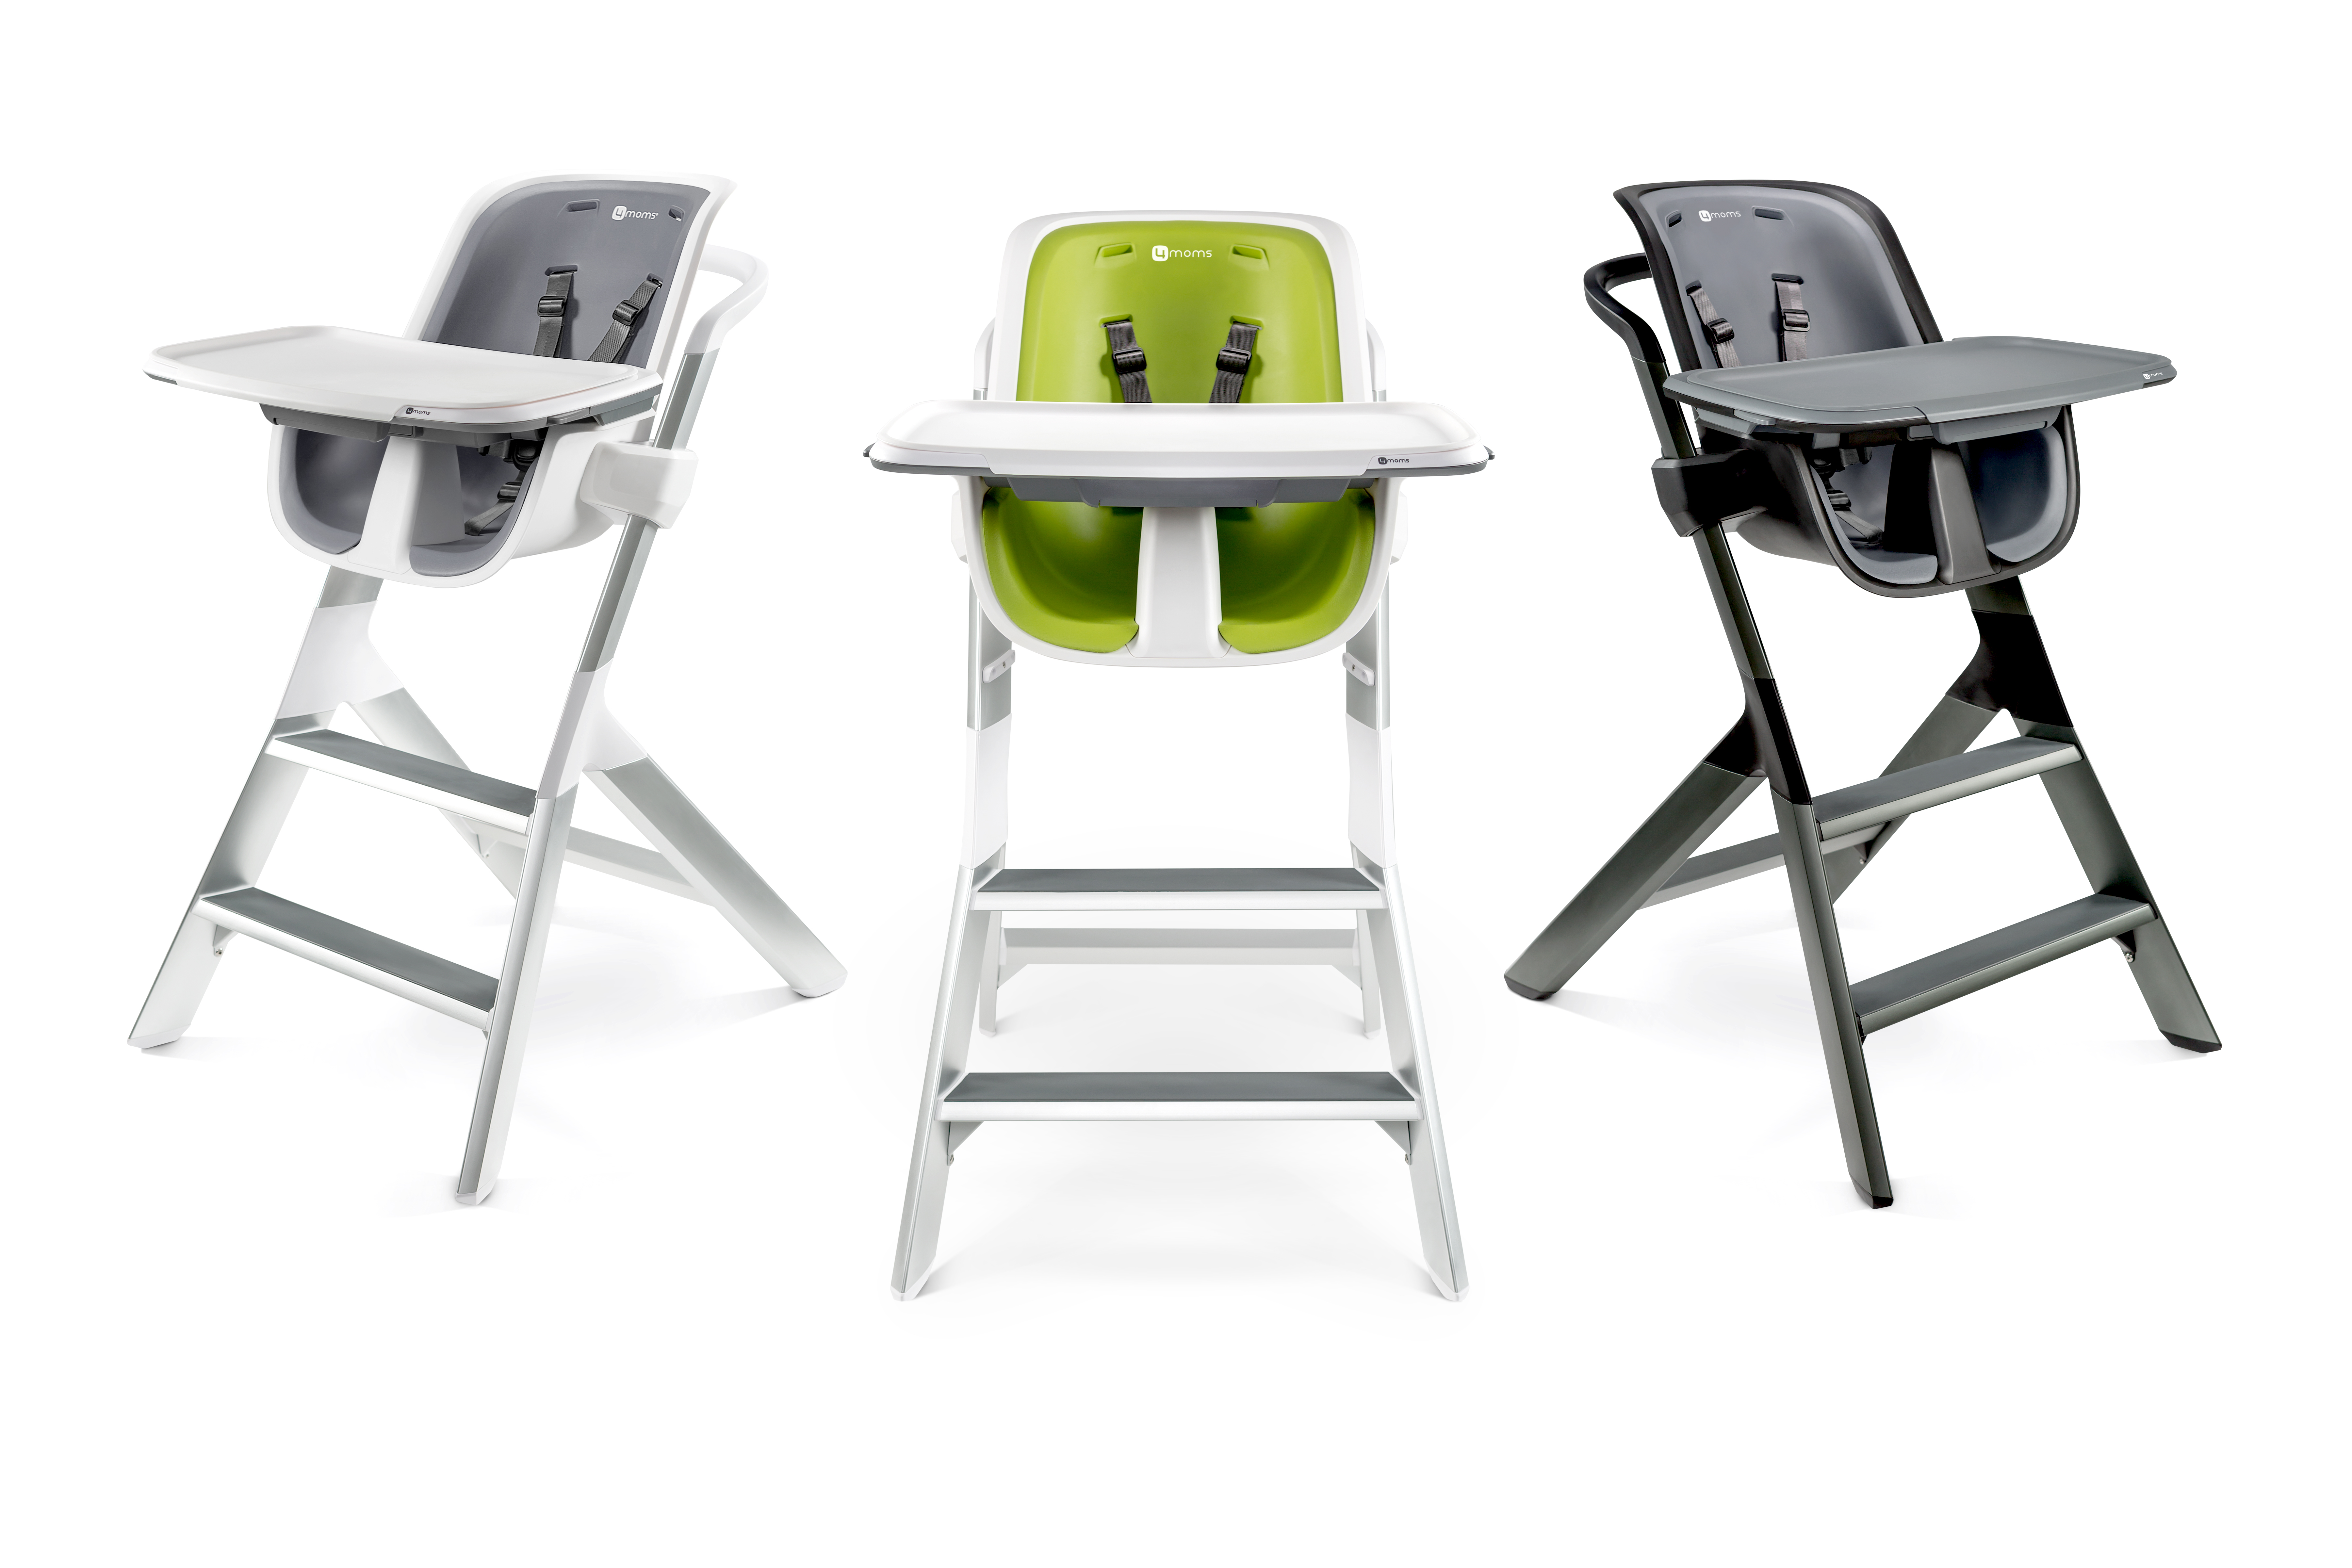 This magnetic high chair has some clever features but itu0027s missing the basics - The Verge  sc 1 st  The Verge & This magnetic high chair has some clever features but itu0027s missing ...